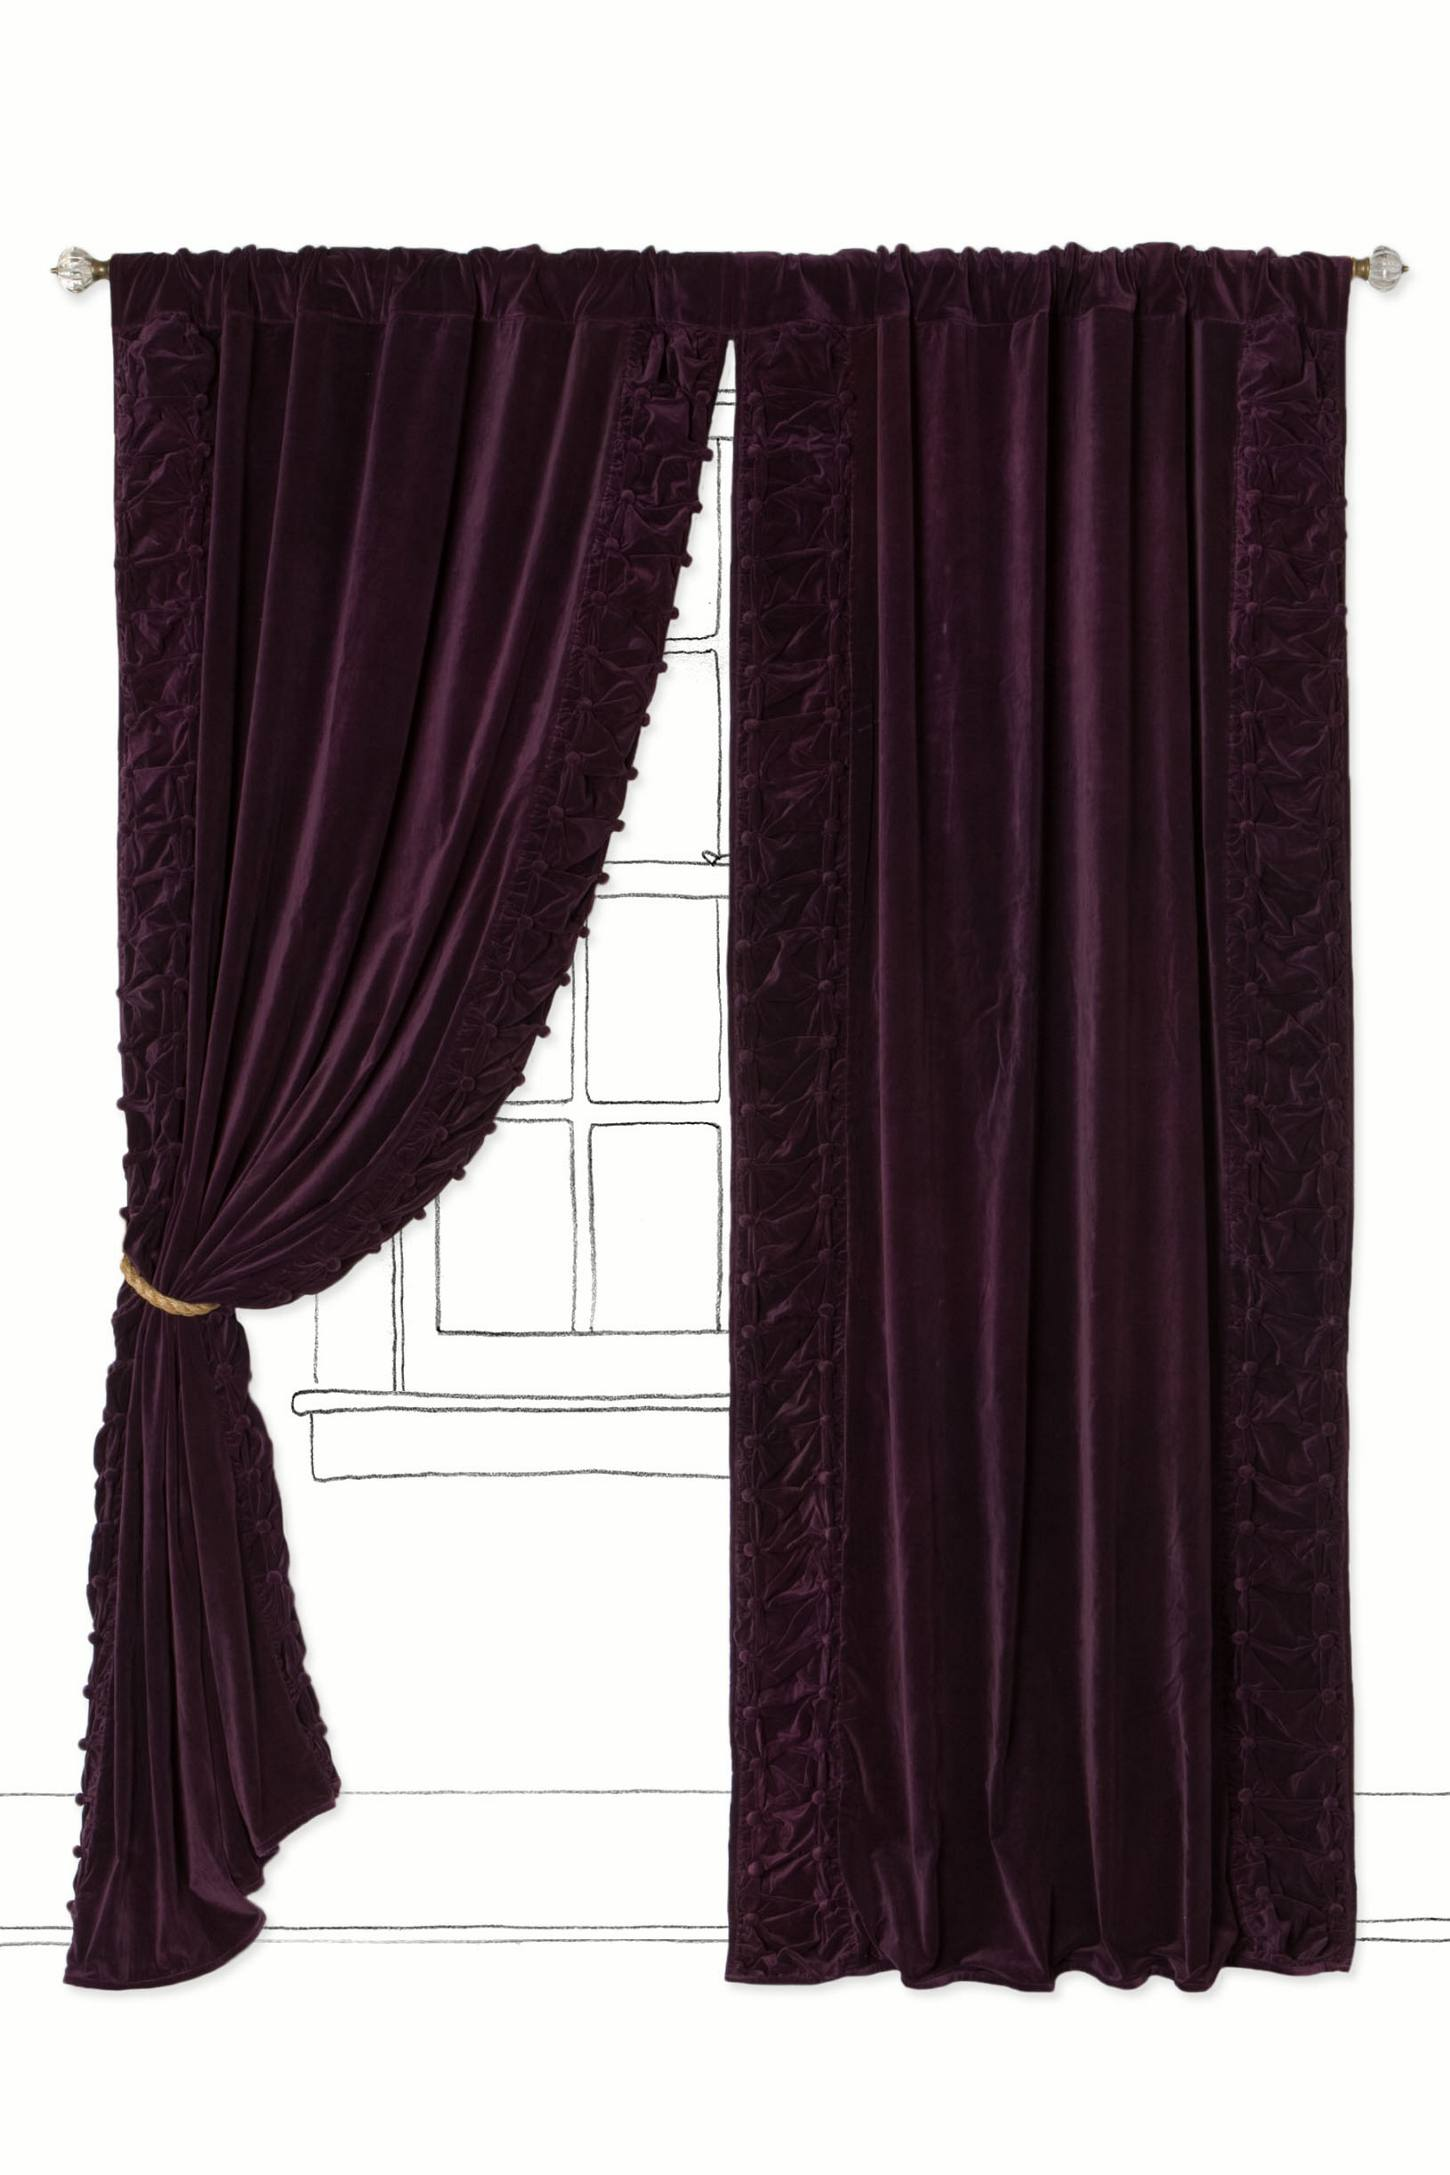 Parlor Curtain